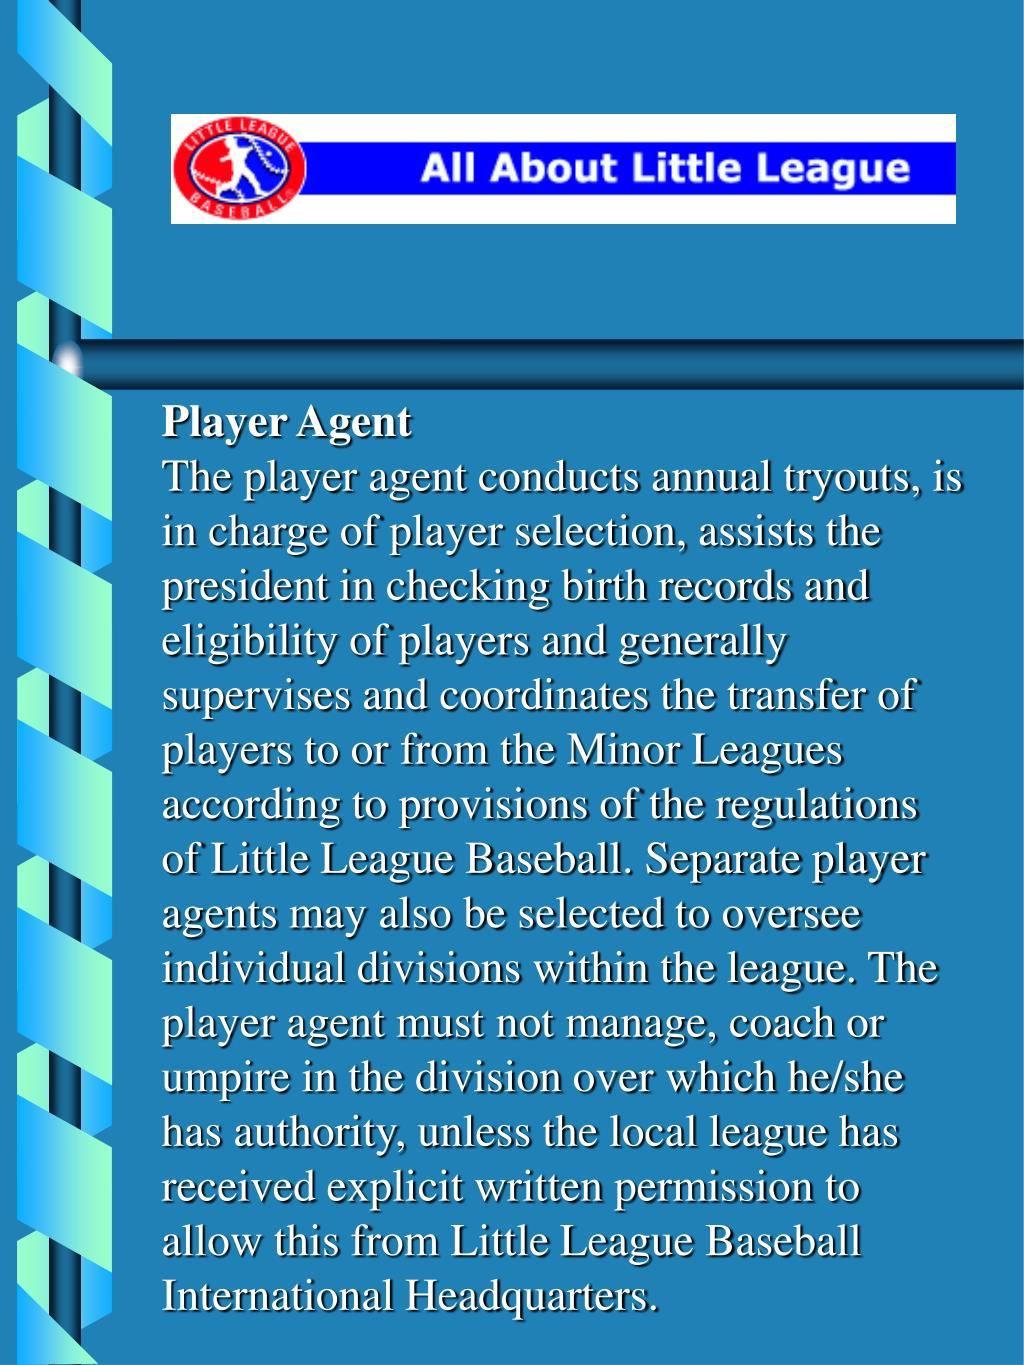 Player Agent